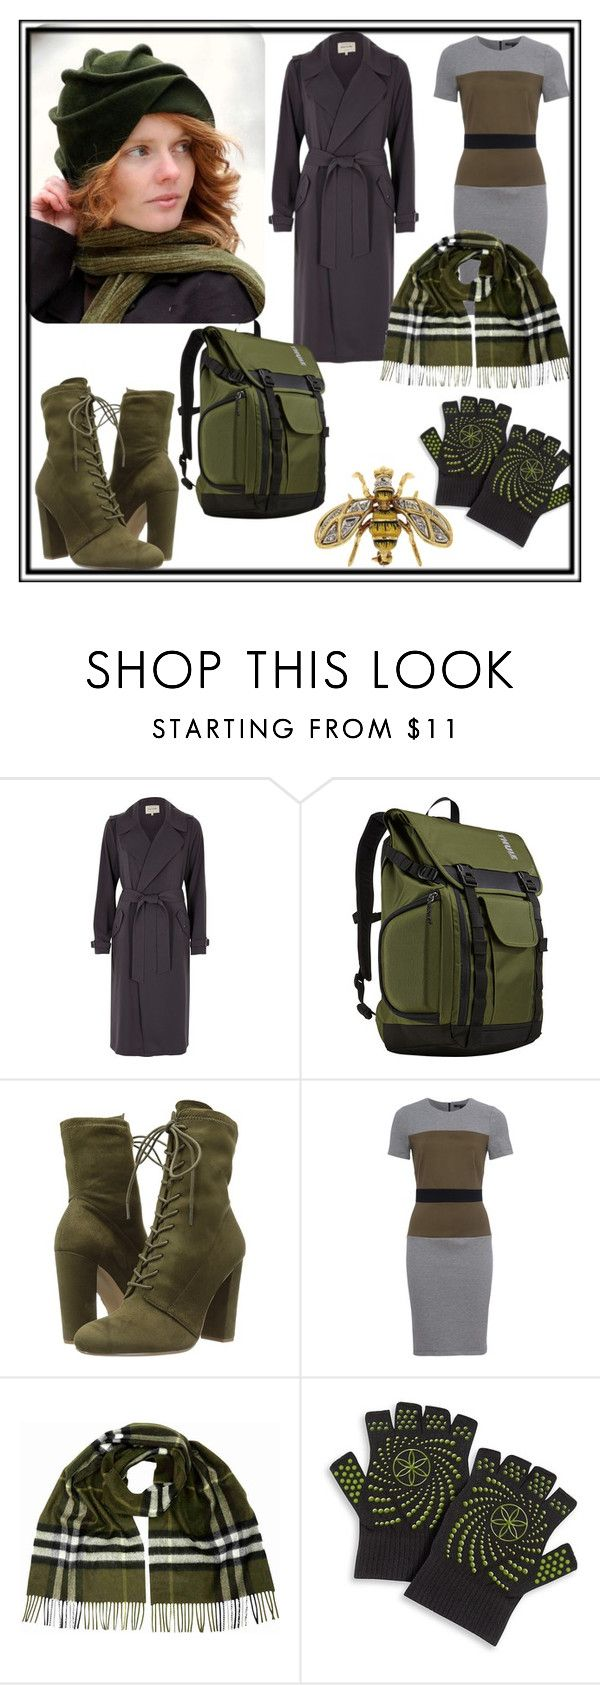 """""""Winter Hat"""" by karen-lynn-rigmarole ❤ liked on Polyvore featuring River Island, Thule, Steve Madden, French Connection, Burberry, Gaiam, winterhat and oliveandgrey"""